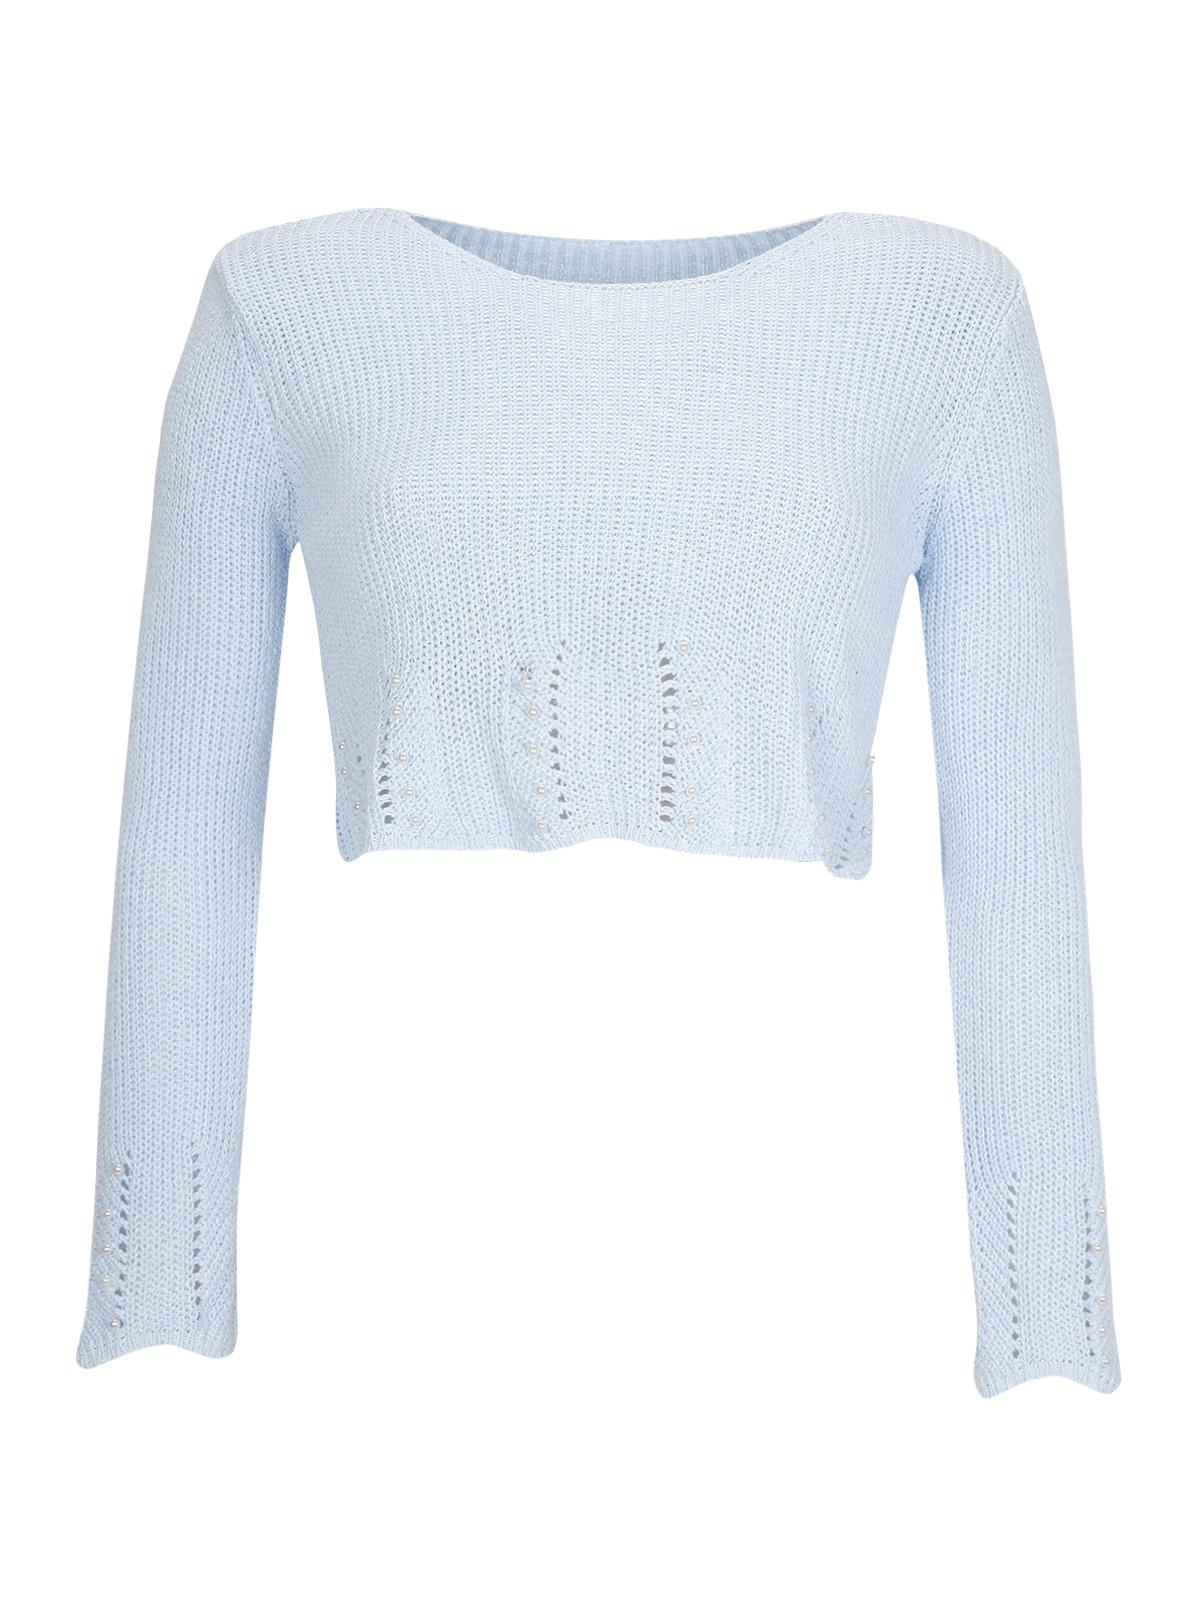 fb6108c3d7 Top corto in maglia con perle new collection | MecShopping